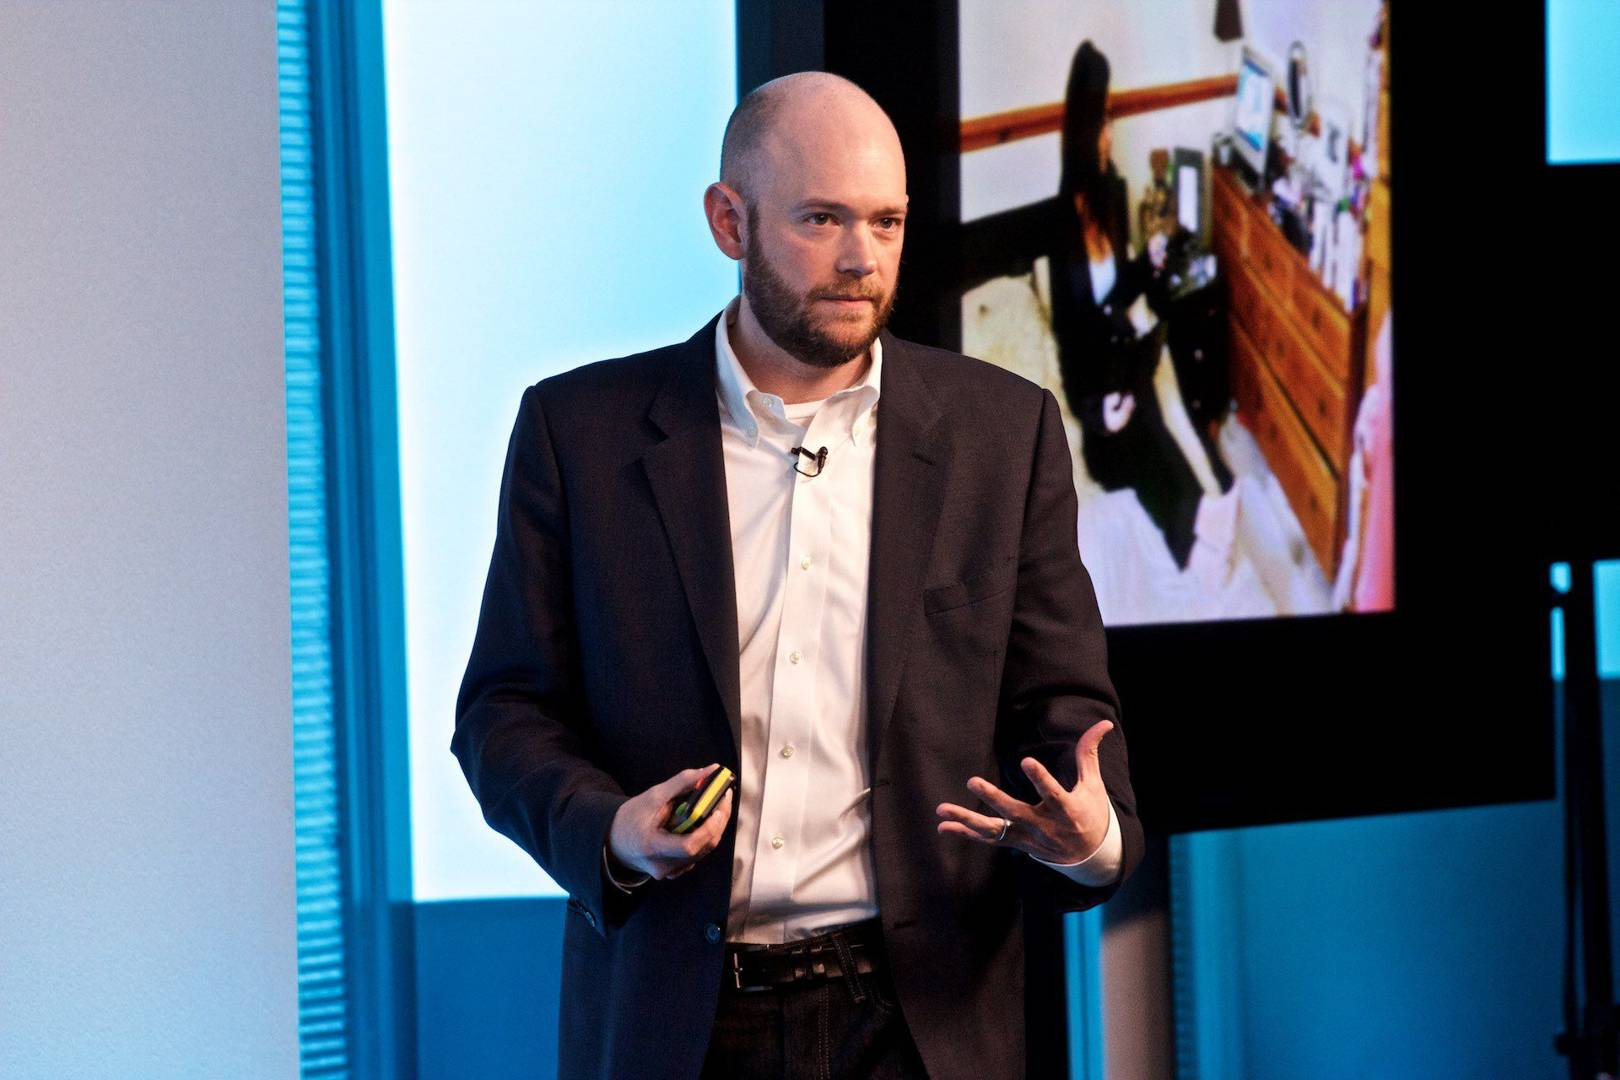 Intel futurist: \'imagination is the undeveloped skill\' | WIRED UK